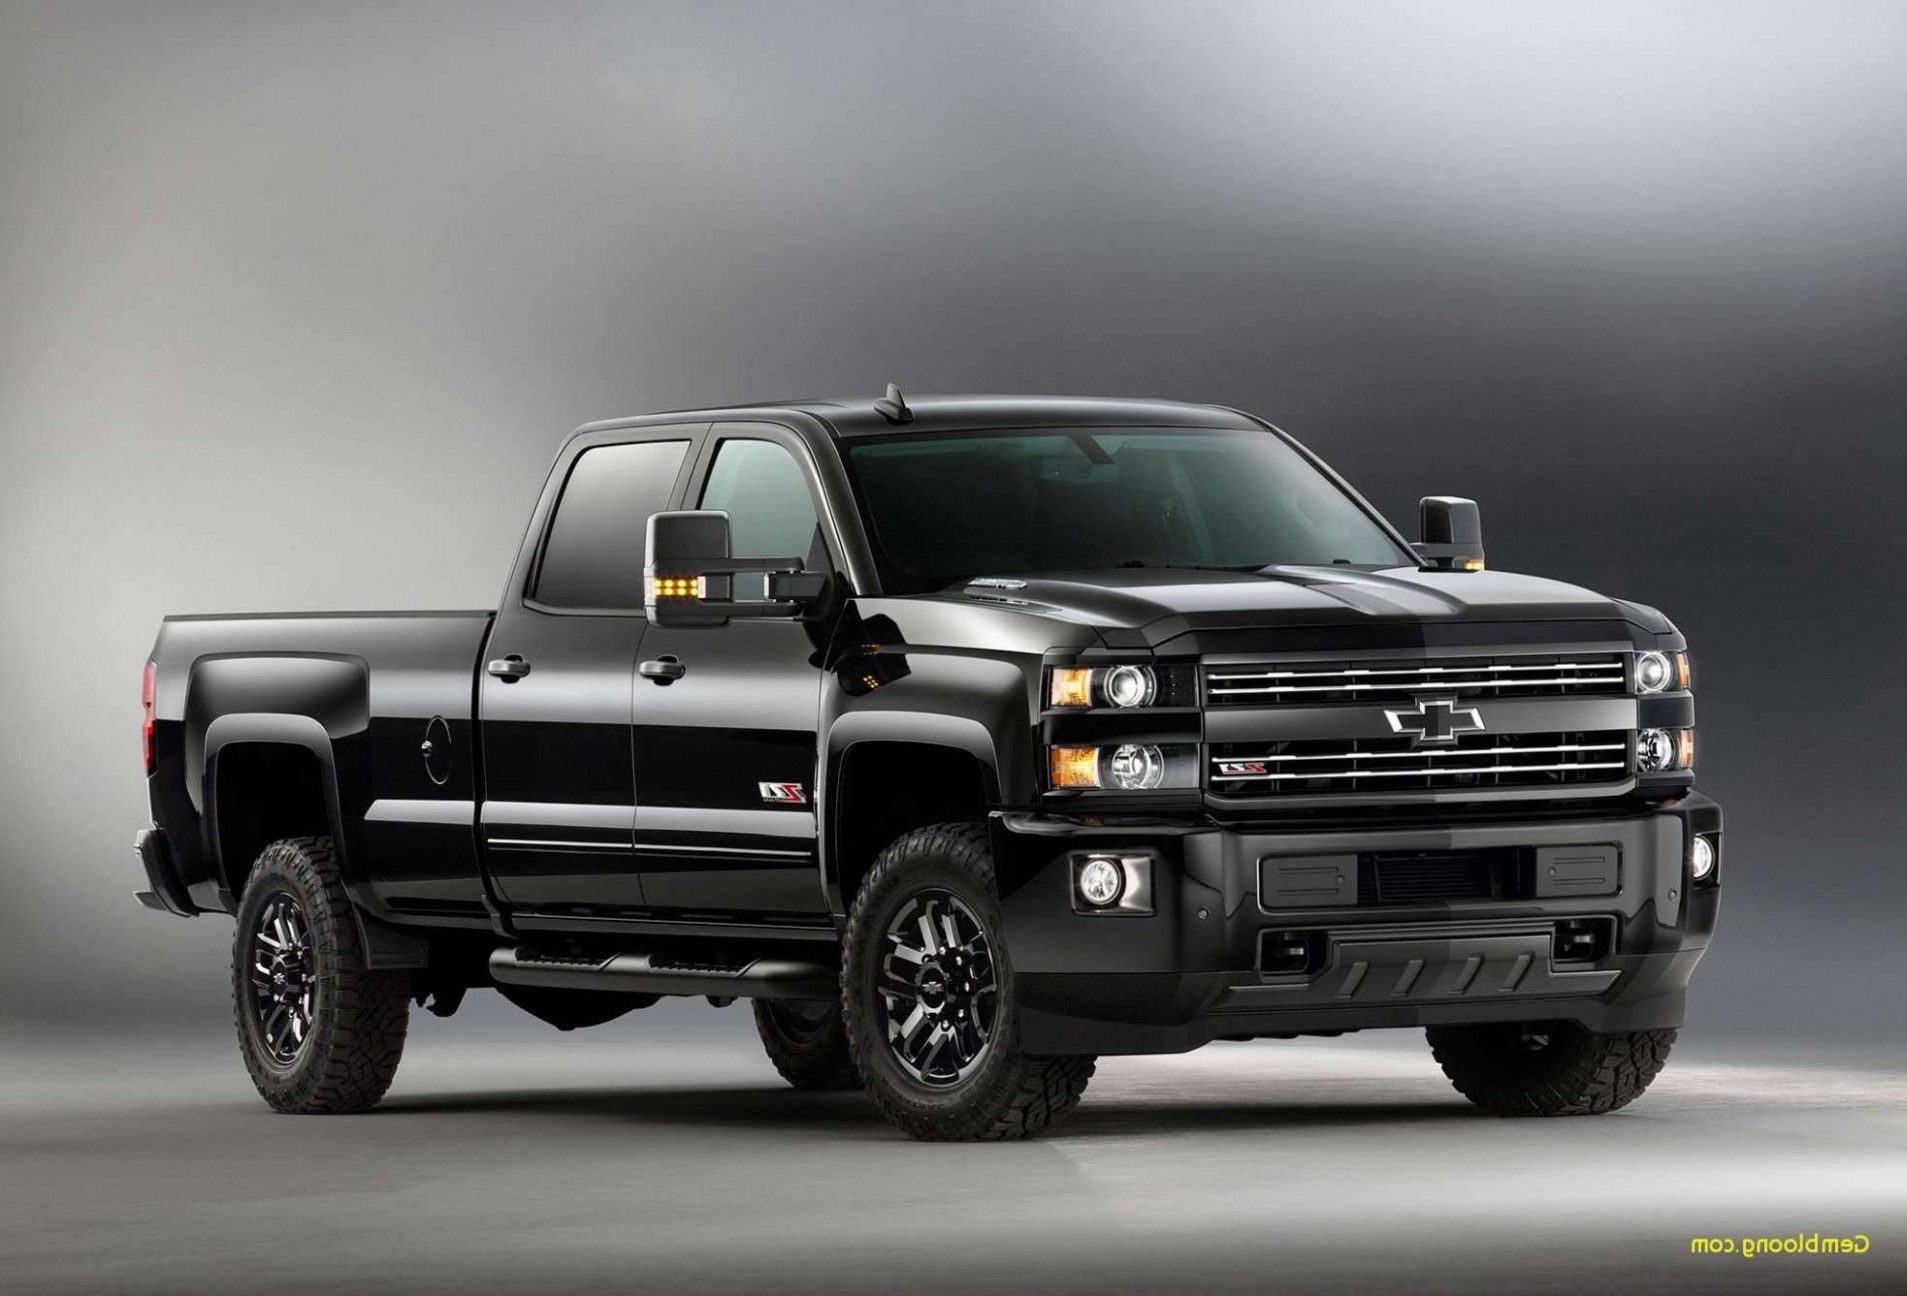 2020 Chevrolet Z71 Truck Price 2020 Chevrolet Z71 Truck Earlier This Anniversary We Showed You What The New Chevy Silverado Chevy Duramax Chevy Silverado Hd